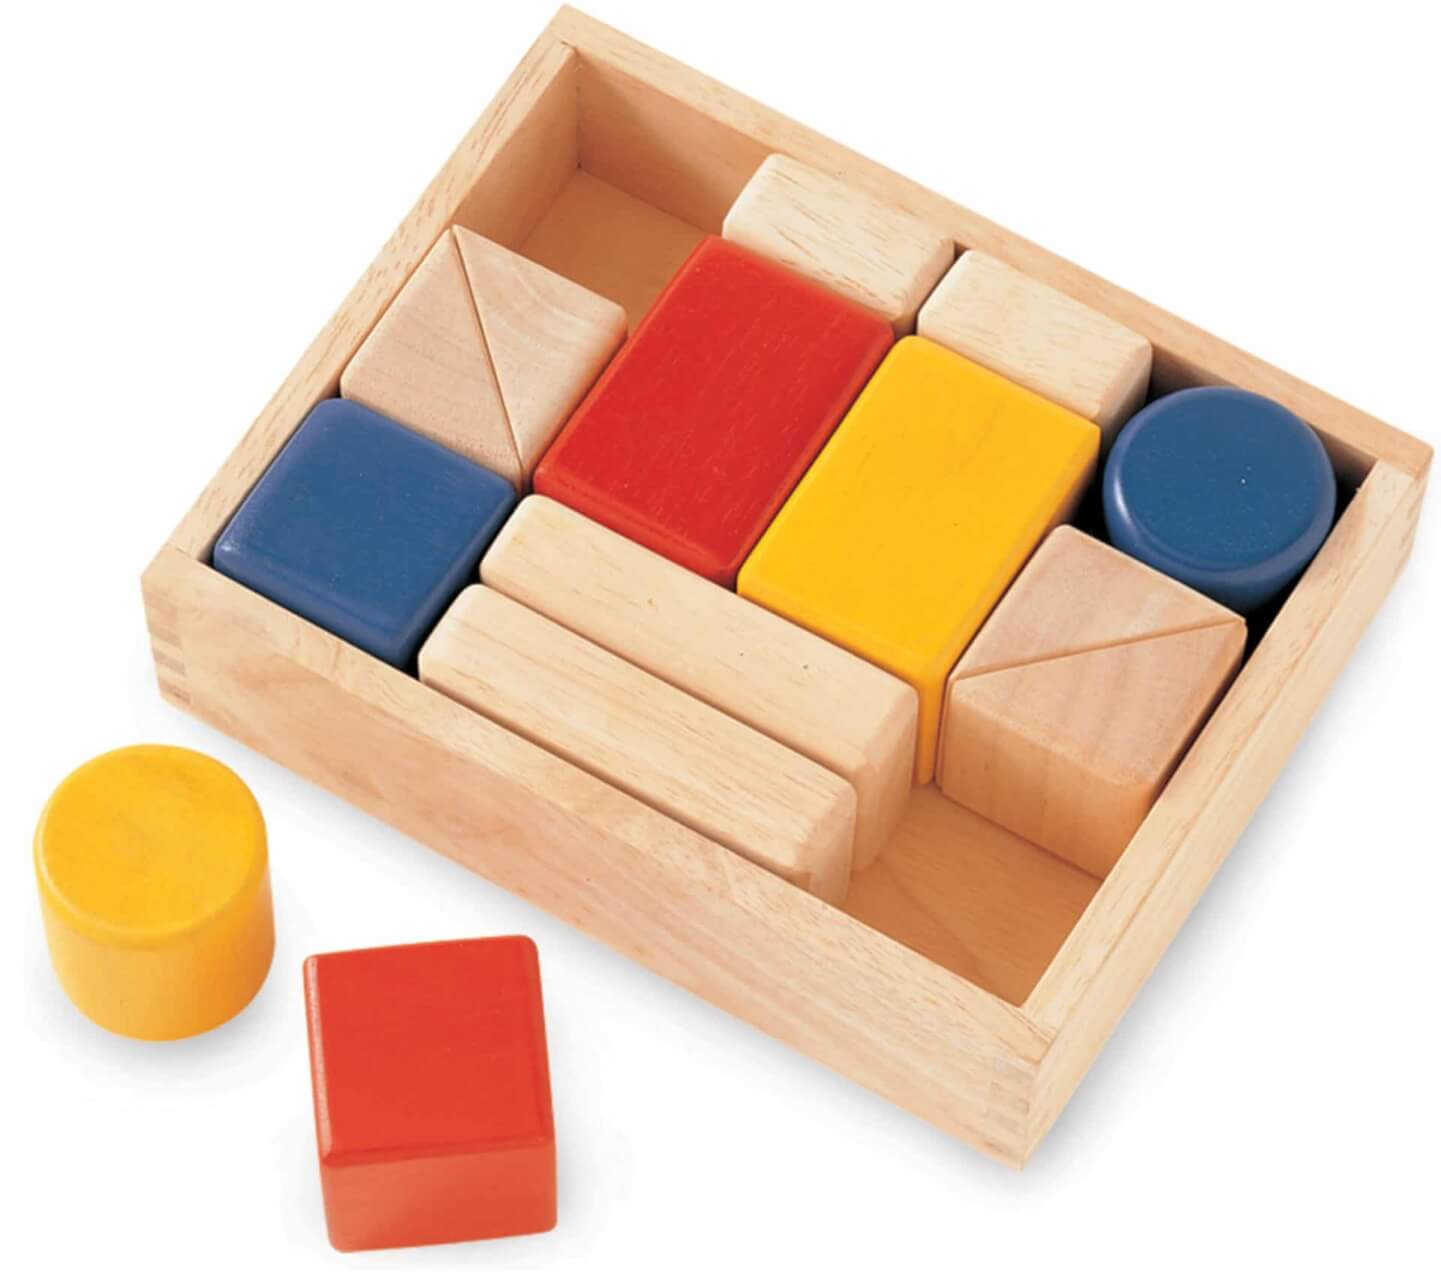 Wooden building blocks with hidden sounds